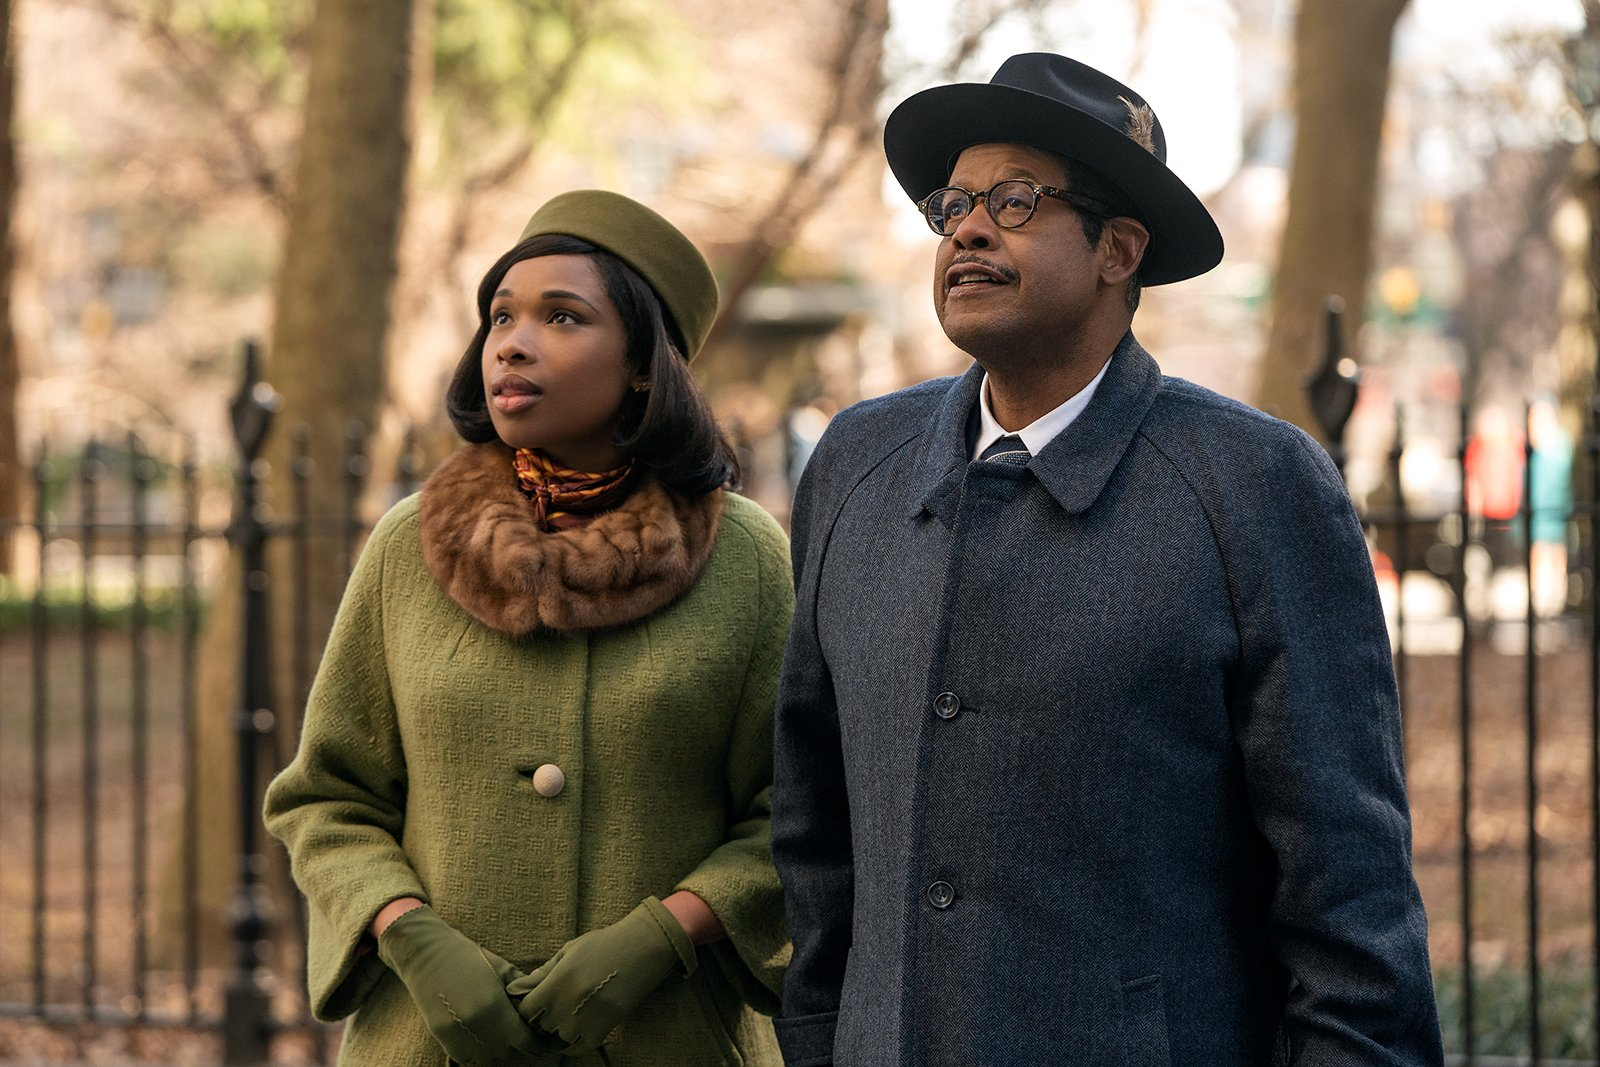 """Jennifer Hudson, left, stars as Aretha Franklin and Forest Whitaker as her father C.L. Franklin in """"Respect,"""" a Metro Goldwyn Mayer Pictures film. Photo by Quantrell D. Colbert"""